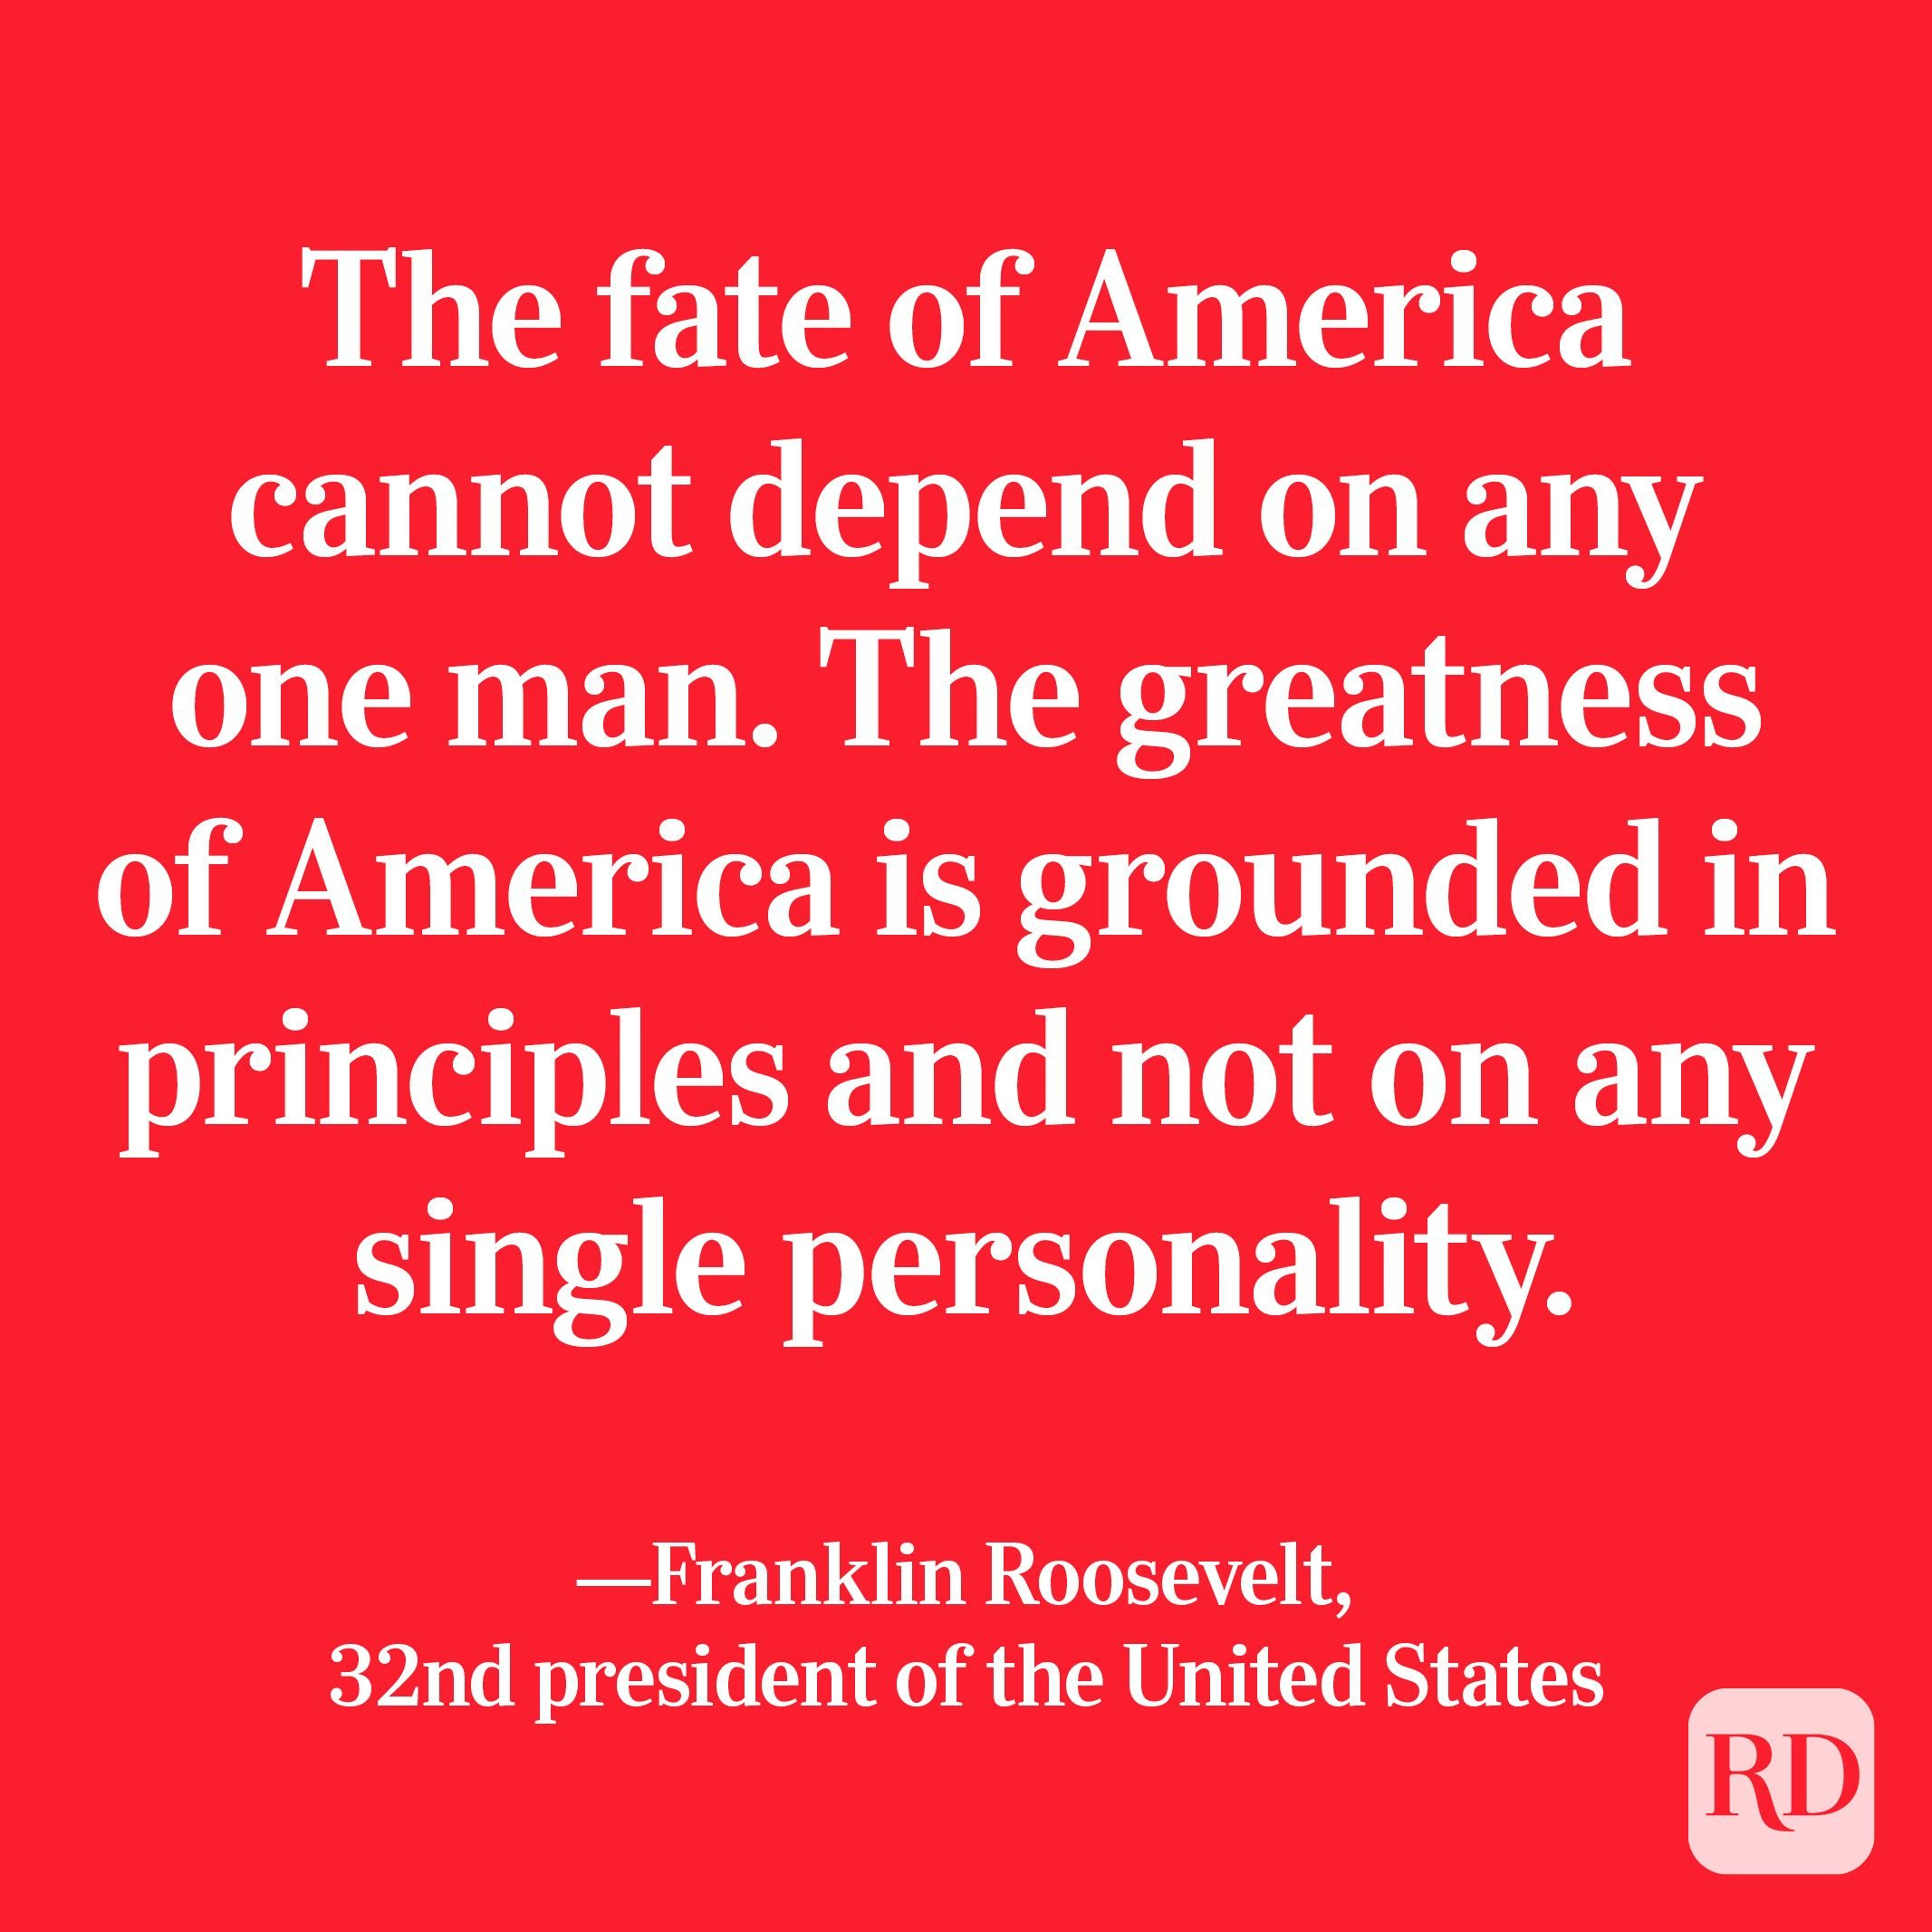 """""""The fate of America cannot depend on any one man. The greatness of America is grounded in principles and not on any single personality."""" —Franklin Roosevelt, 32nd president of the United States"""